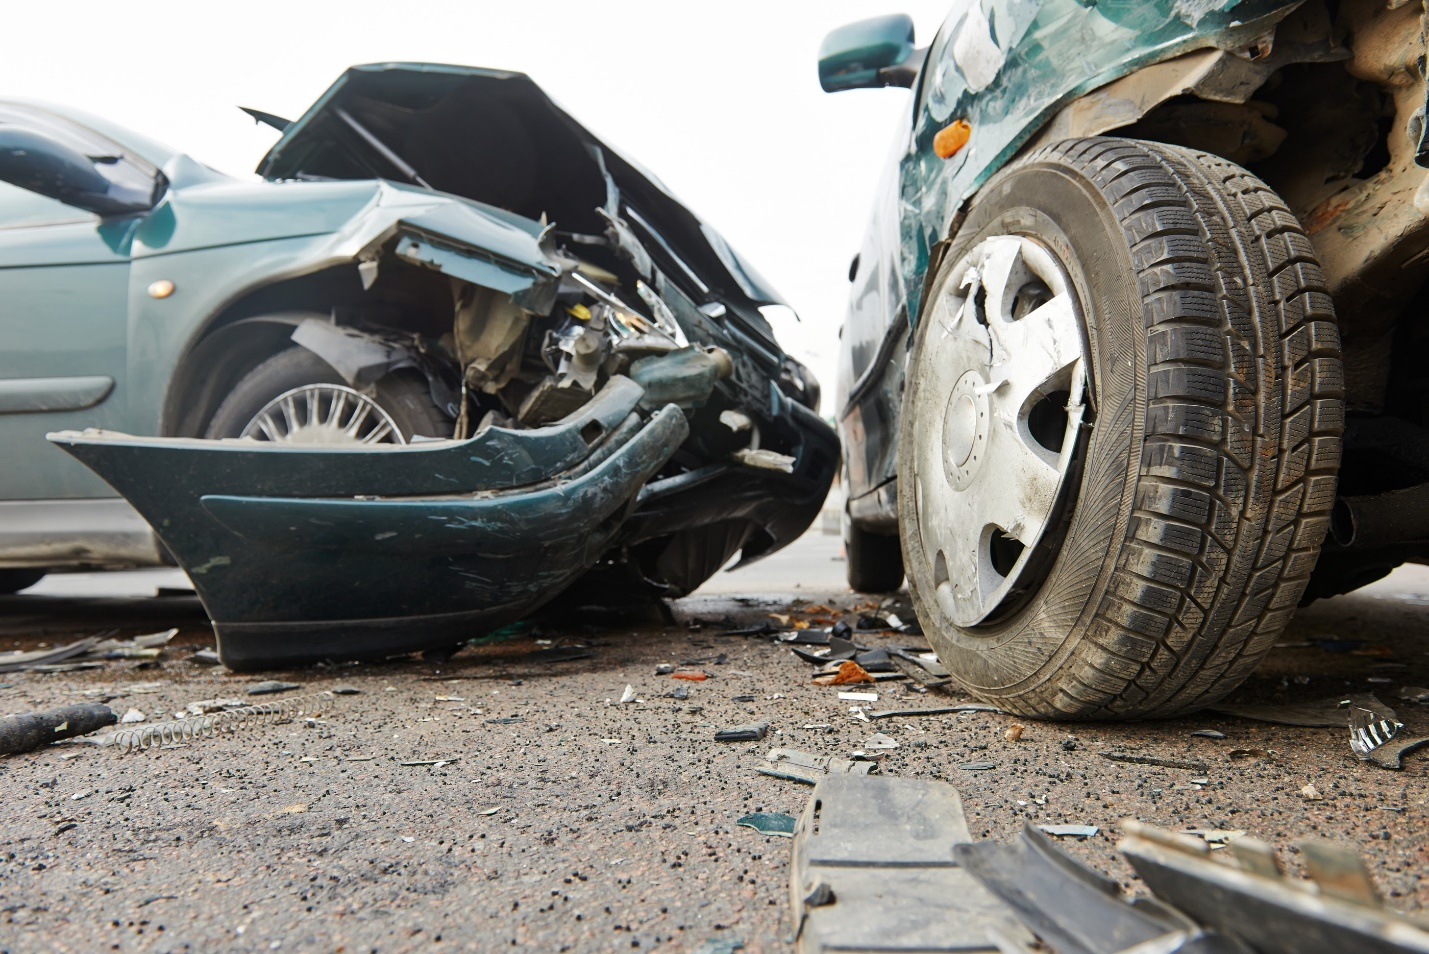 fayetteville car accident lawyer 1 - How Many Car Accidents are there Per Day in Arkansas?